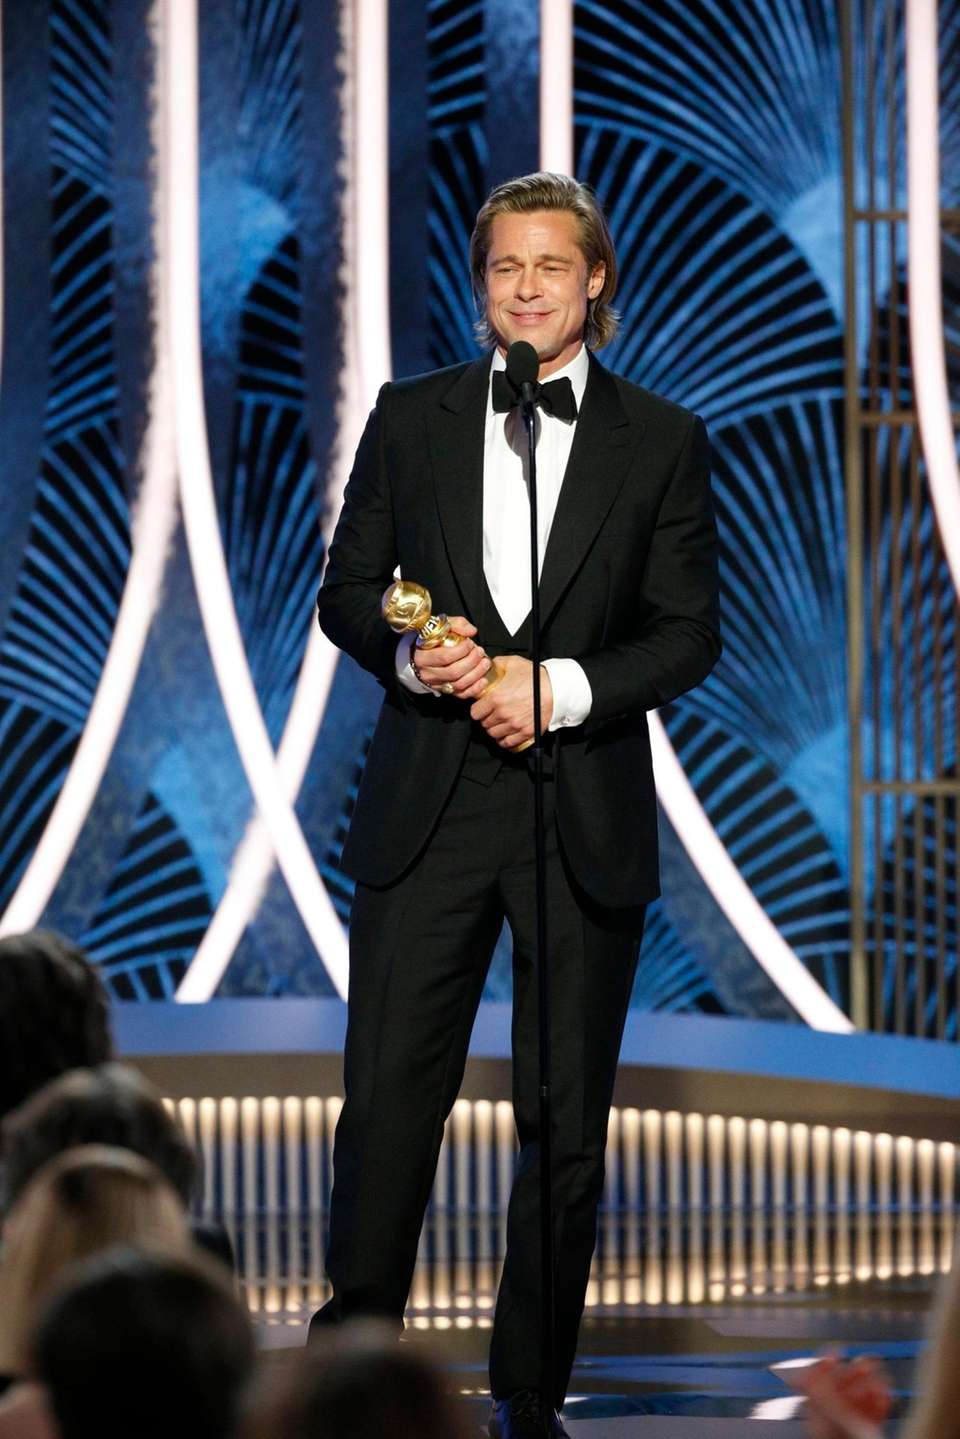 This image released by NBC shows Brad Pitt